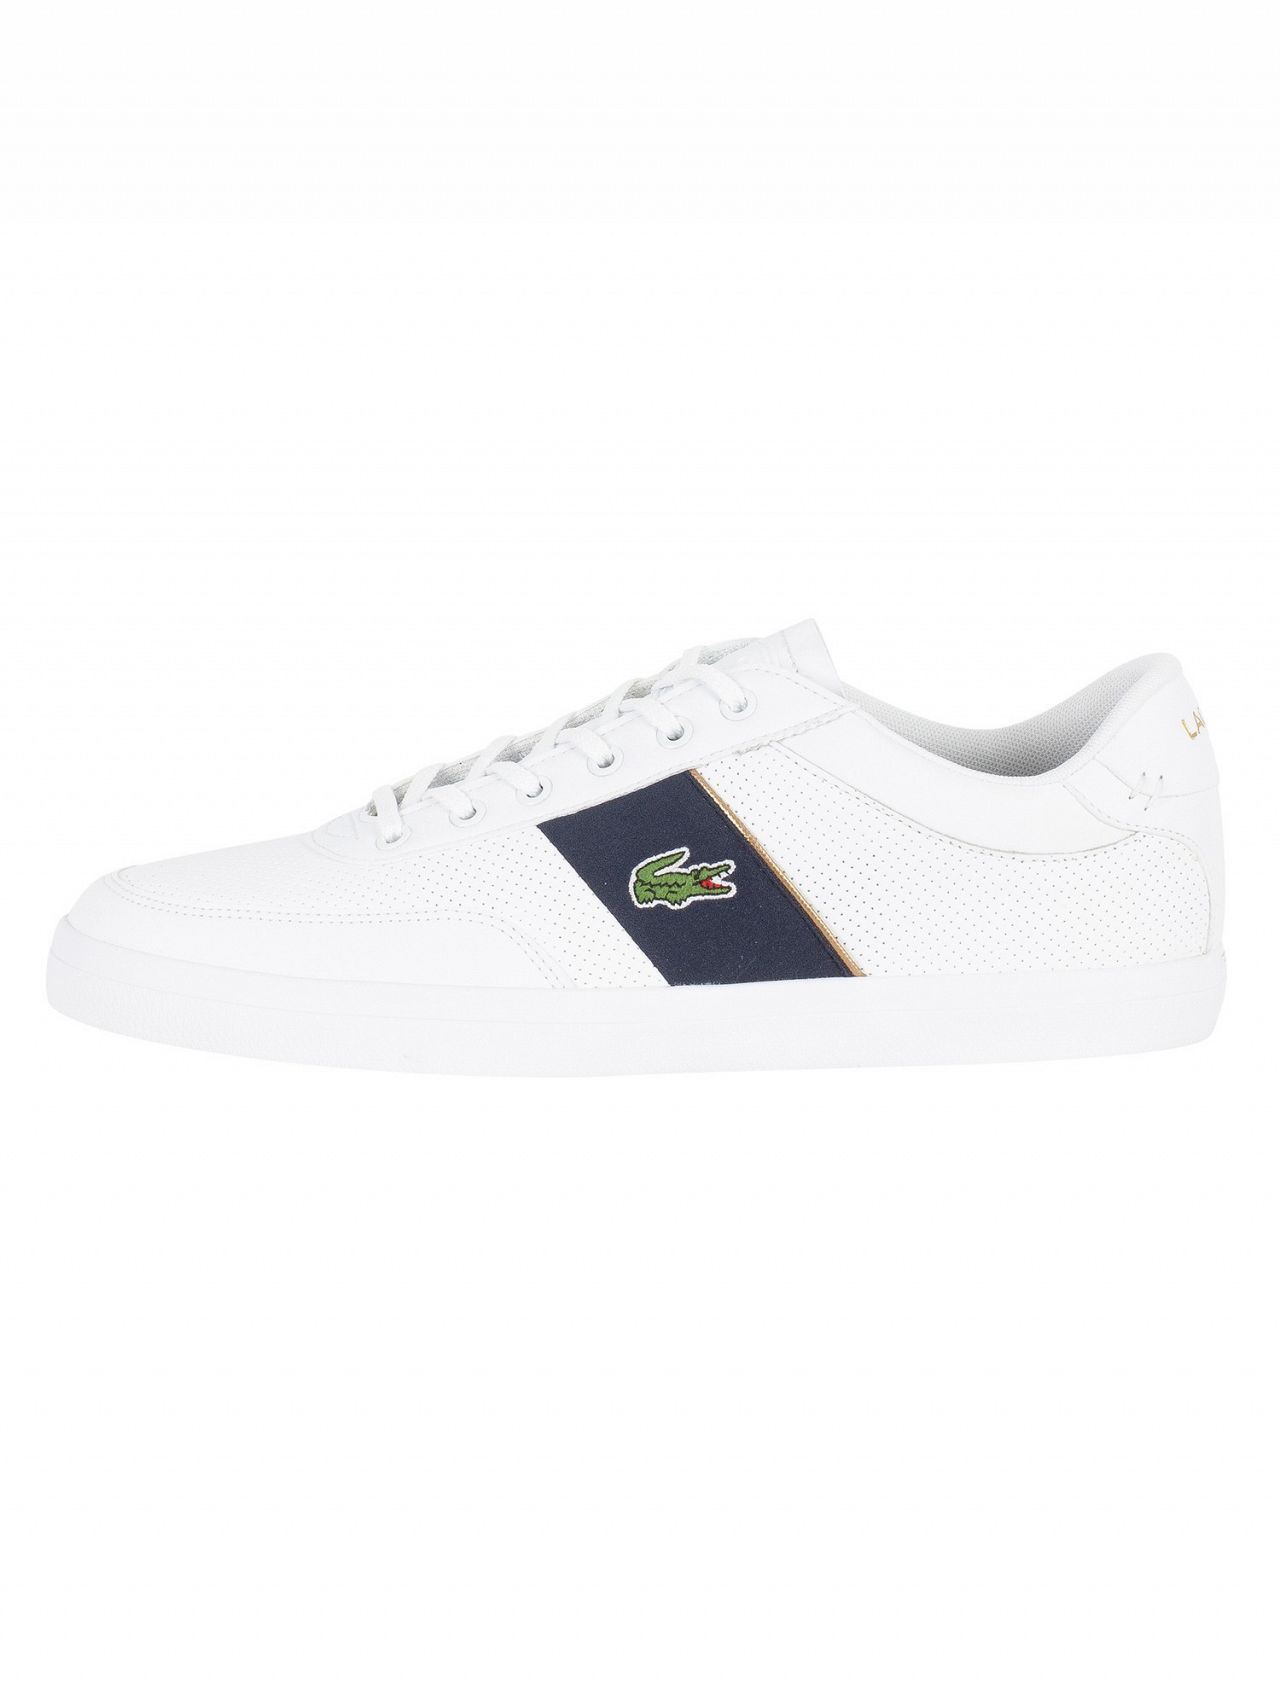 5d54371d2 Lacoste White Navy Court-Master 318 1 CAM Trainers